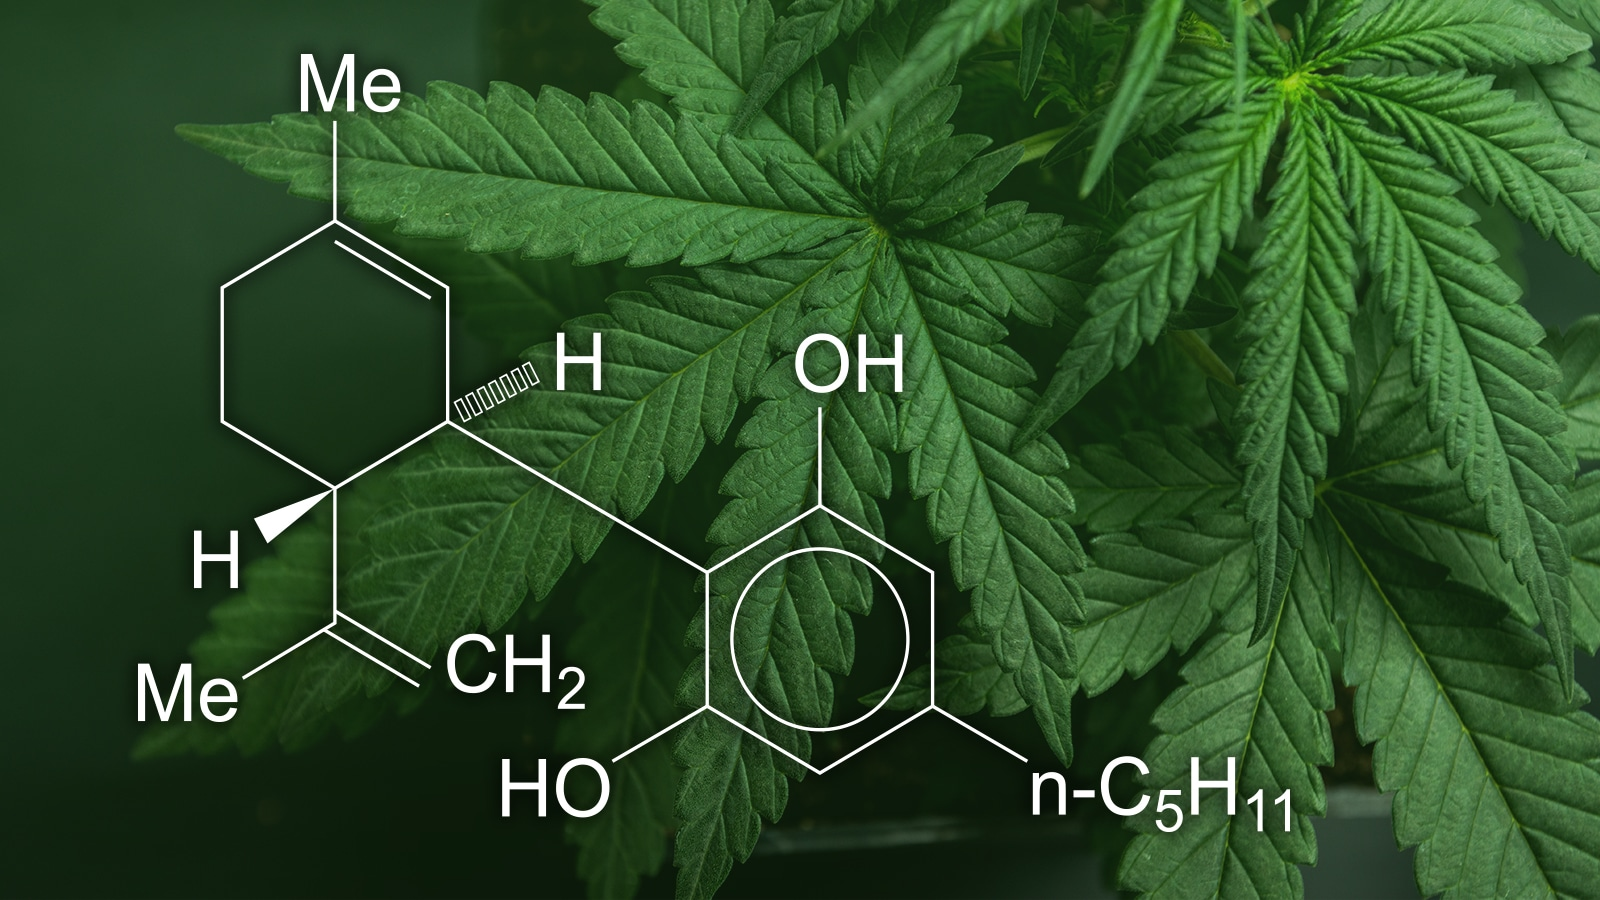 No, CBD is not a miracle molecule that can cure coronavirus, just as it won't cure many other maladies its proponents claim